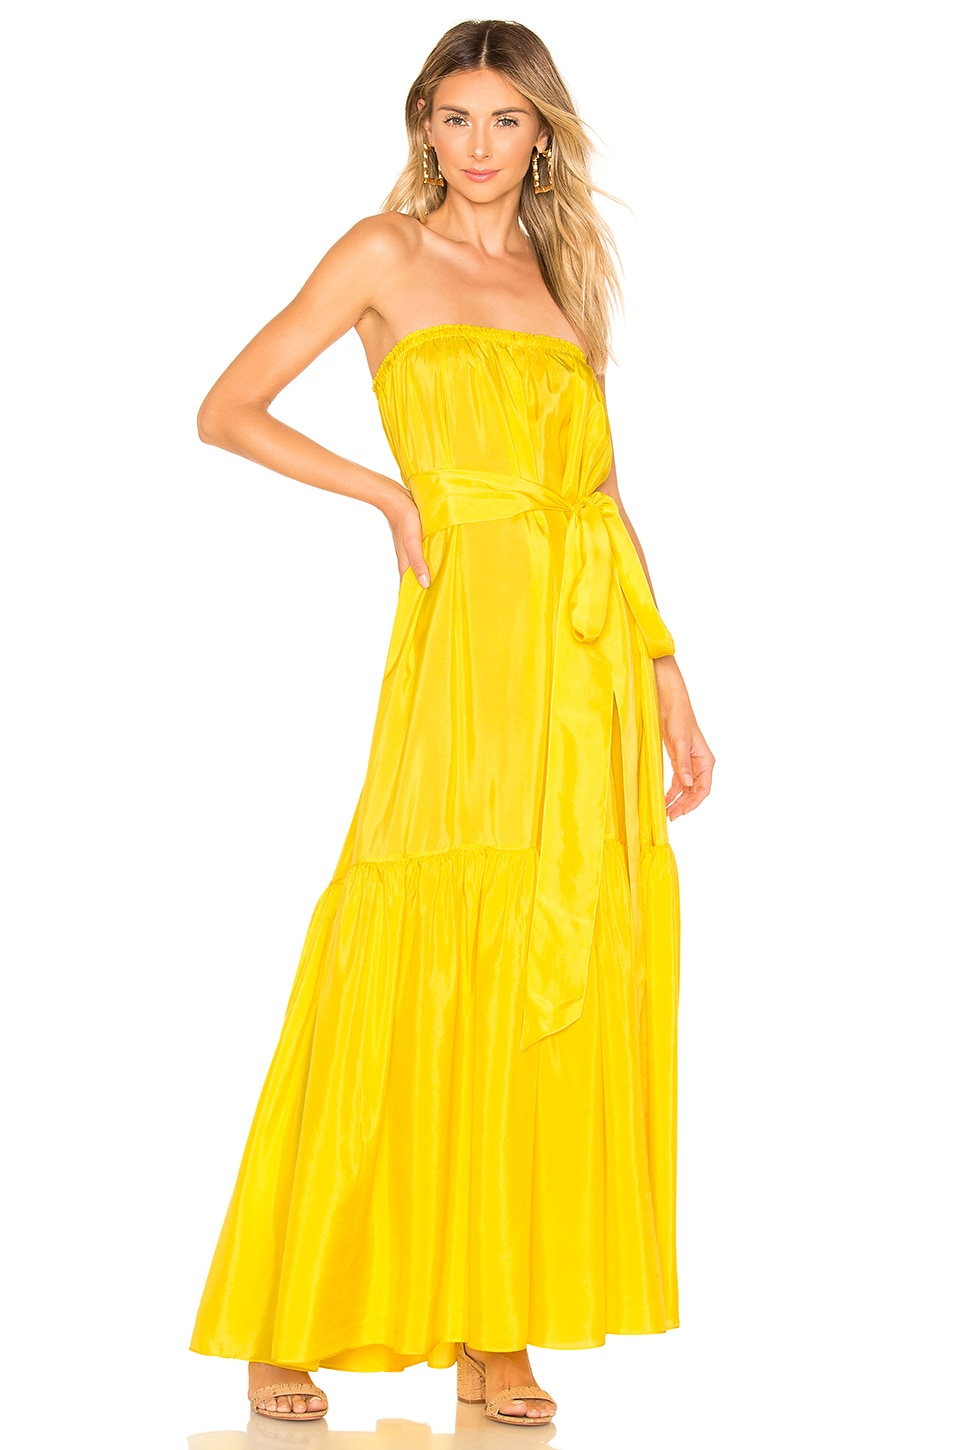 ANAAK Sakura Strapless Dress in Sun Yellow